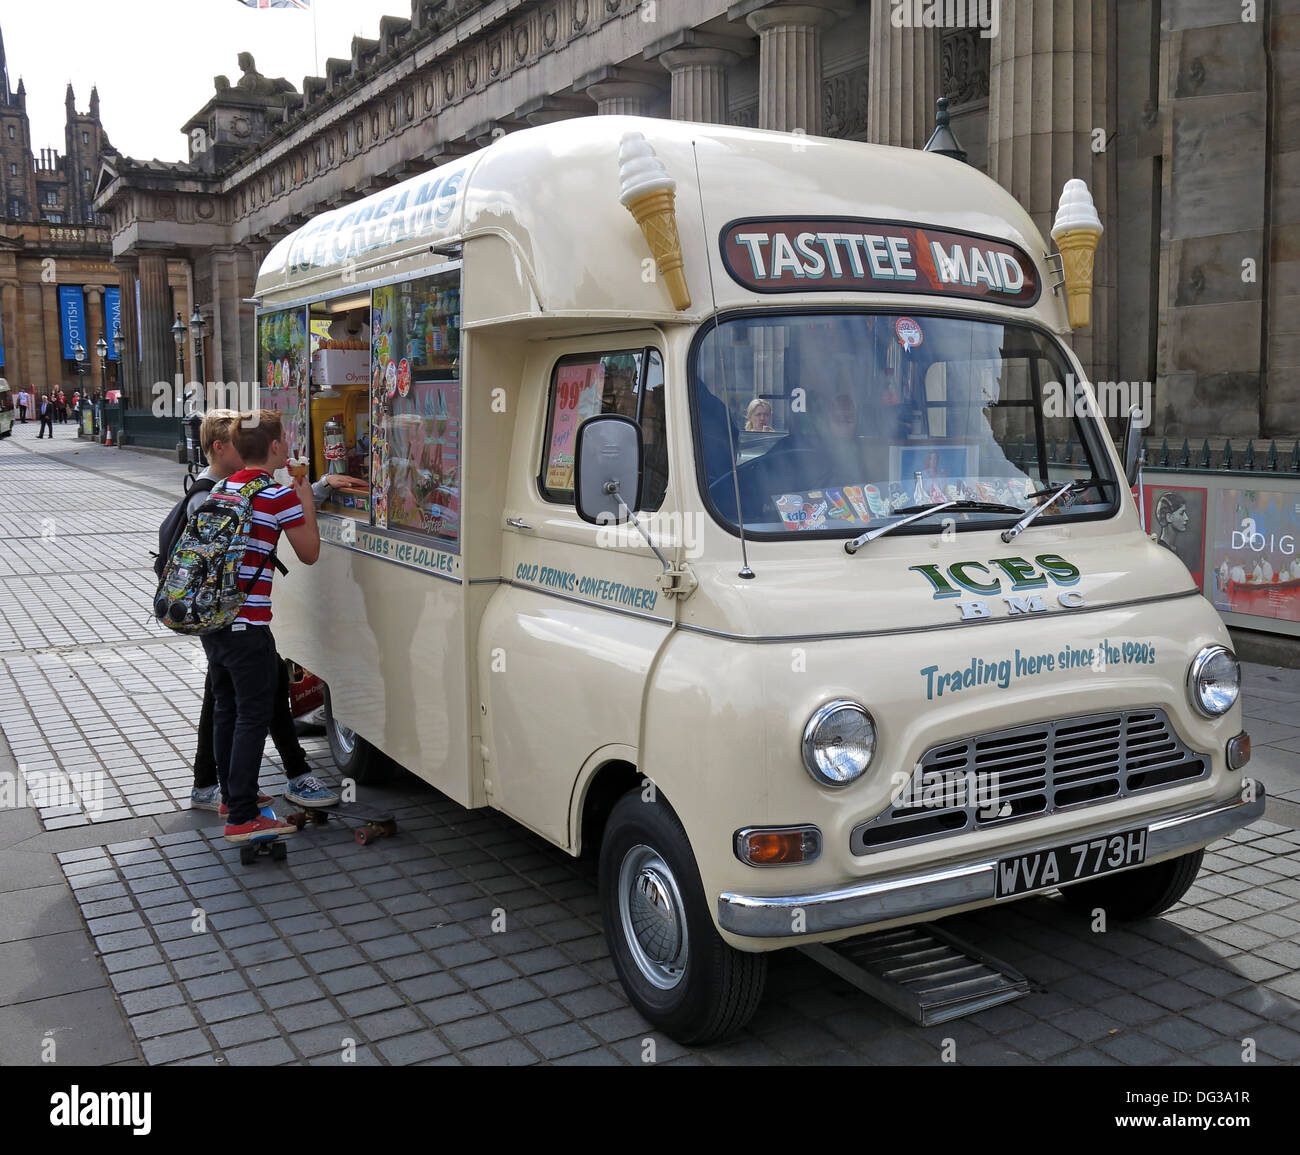 1960s,in,Edinburgh,city,centre,Scotland,UK,2013,mrwhippy,mr,whippy,tasttee,icecream,cone,cones,wafer,wafers,lollies,lolly,kids,pleasure,soft,serve,softserve,vans,happy,customer,hard,van,selling,scoop,soft,machine,British,summer,heatwave,heat,wave,on,his,patch,pitch,organised,crime,syndicates,maid,Gotonysmith,customers,truck,stop,me,and,buy,one,Pop,Goes,The,Weasel,The,Entertainer,Music,Box,Dancer,Home,on,the,Range,Its,a,Small,World,Super,Mario,Bros.,Theme,Camptown,Races,Greensleeves,Whistle,While,You,Work,You,Are,My,Sunshine,Teddy,Bears',Picnic,Match,of,the,Day,Ice,Cream,by,Andre,Nickatina,essentially,just,Turkey,in,the,Straw,with,bass,1970s,used,them,for,laundering,the,proceeds,of,crime,and,a,front,for,drug,dealing.,A,period,of,Glaswegian,criminal,history,Wars,existed,in,the,1980s,rival,gangs,fighting,for,territory,smuggled,cigarettes,fags,fag,The,Mister,Softee,Jingle,Turkey,in,the,Straw,Do,Your,Ears,Hang,Low?,,,1,,,,,,,or,;,or,,in,Australia,,New,Zealand,,the,United,Kingdom,,,,in,Crewe,and,Nantwich,,in Vale Royal,,in Sheffield, and,in,other,places.,In,some,places,in,the,US,,ice,cream,trucks,play,the,song